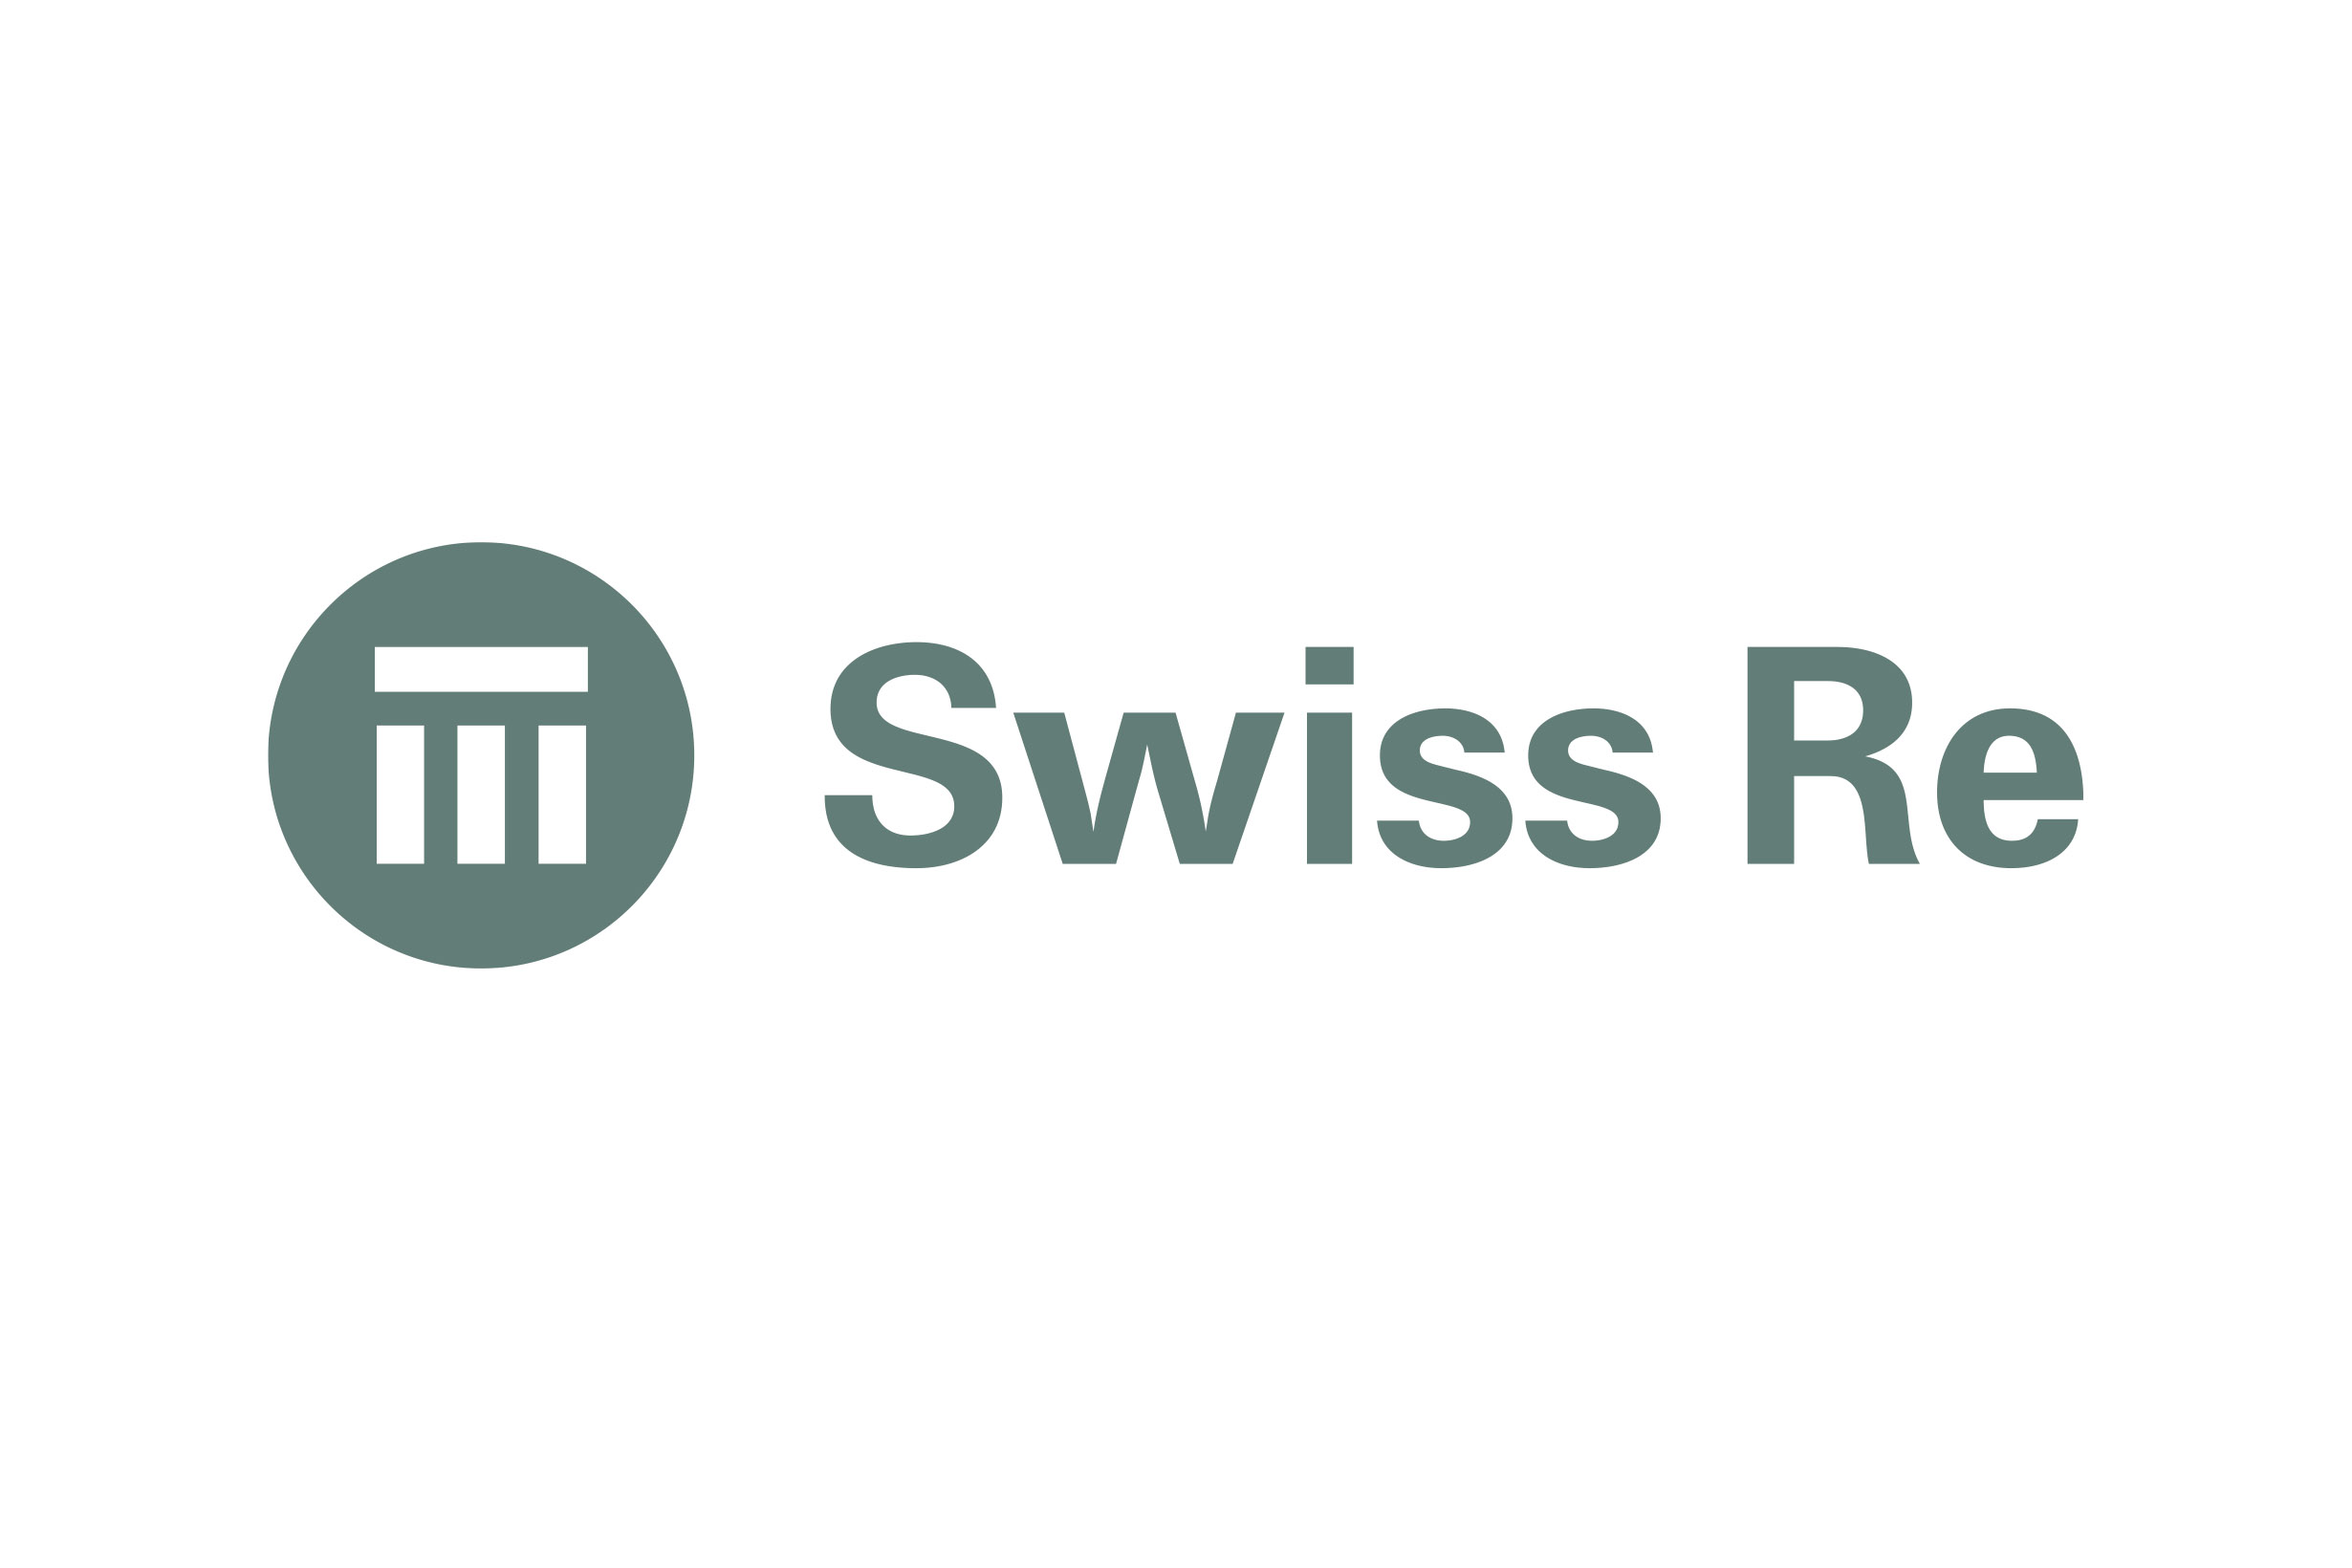 Swiss Re Logo